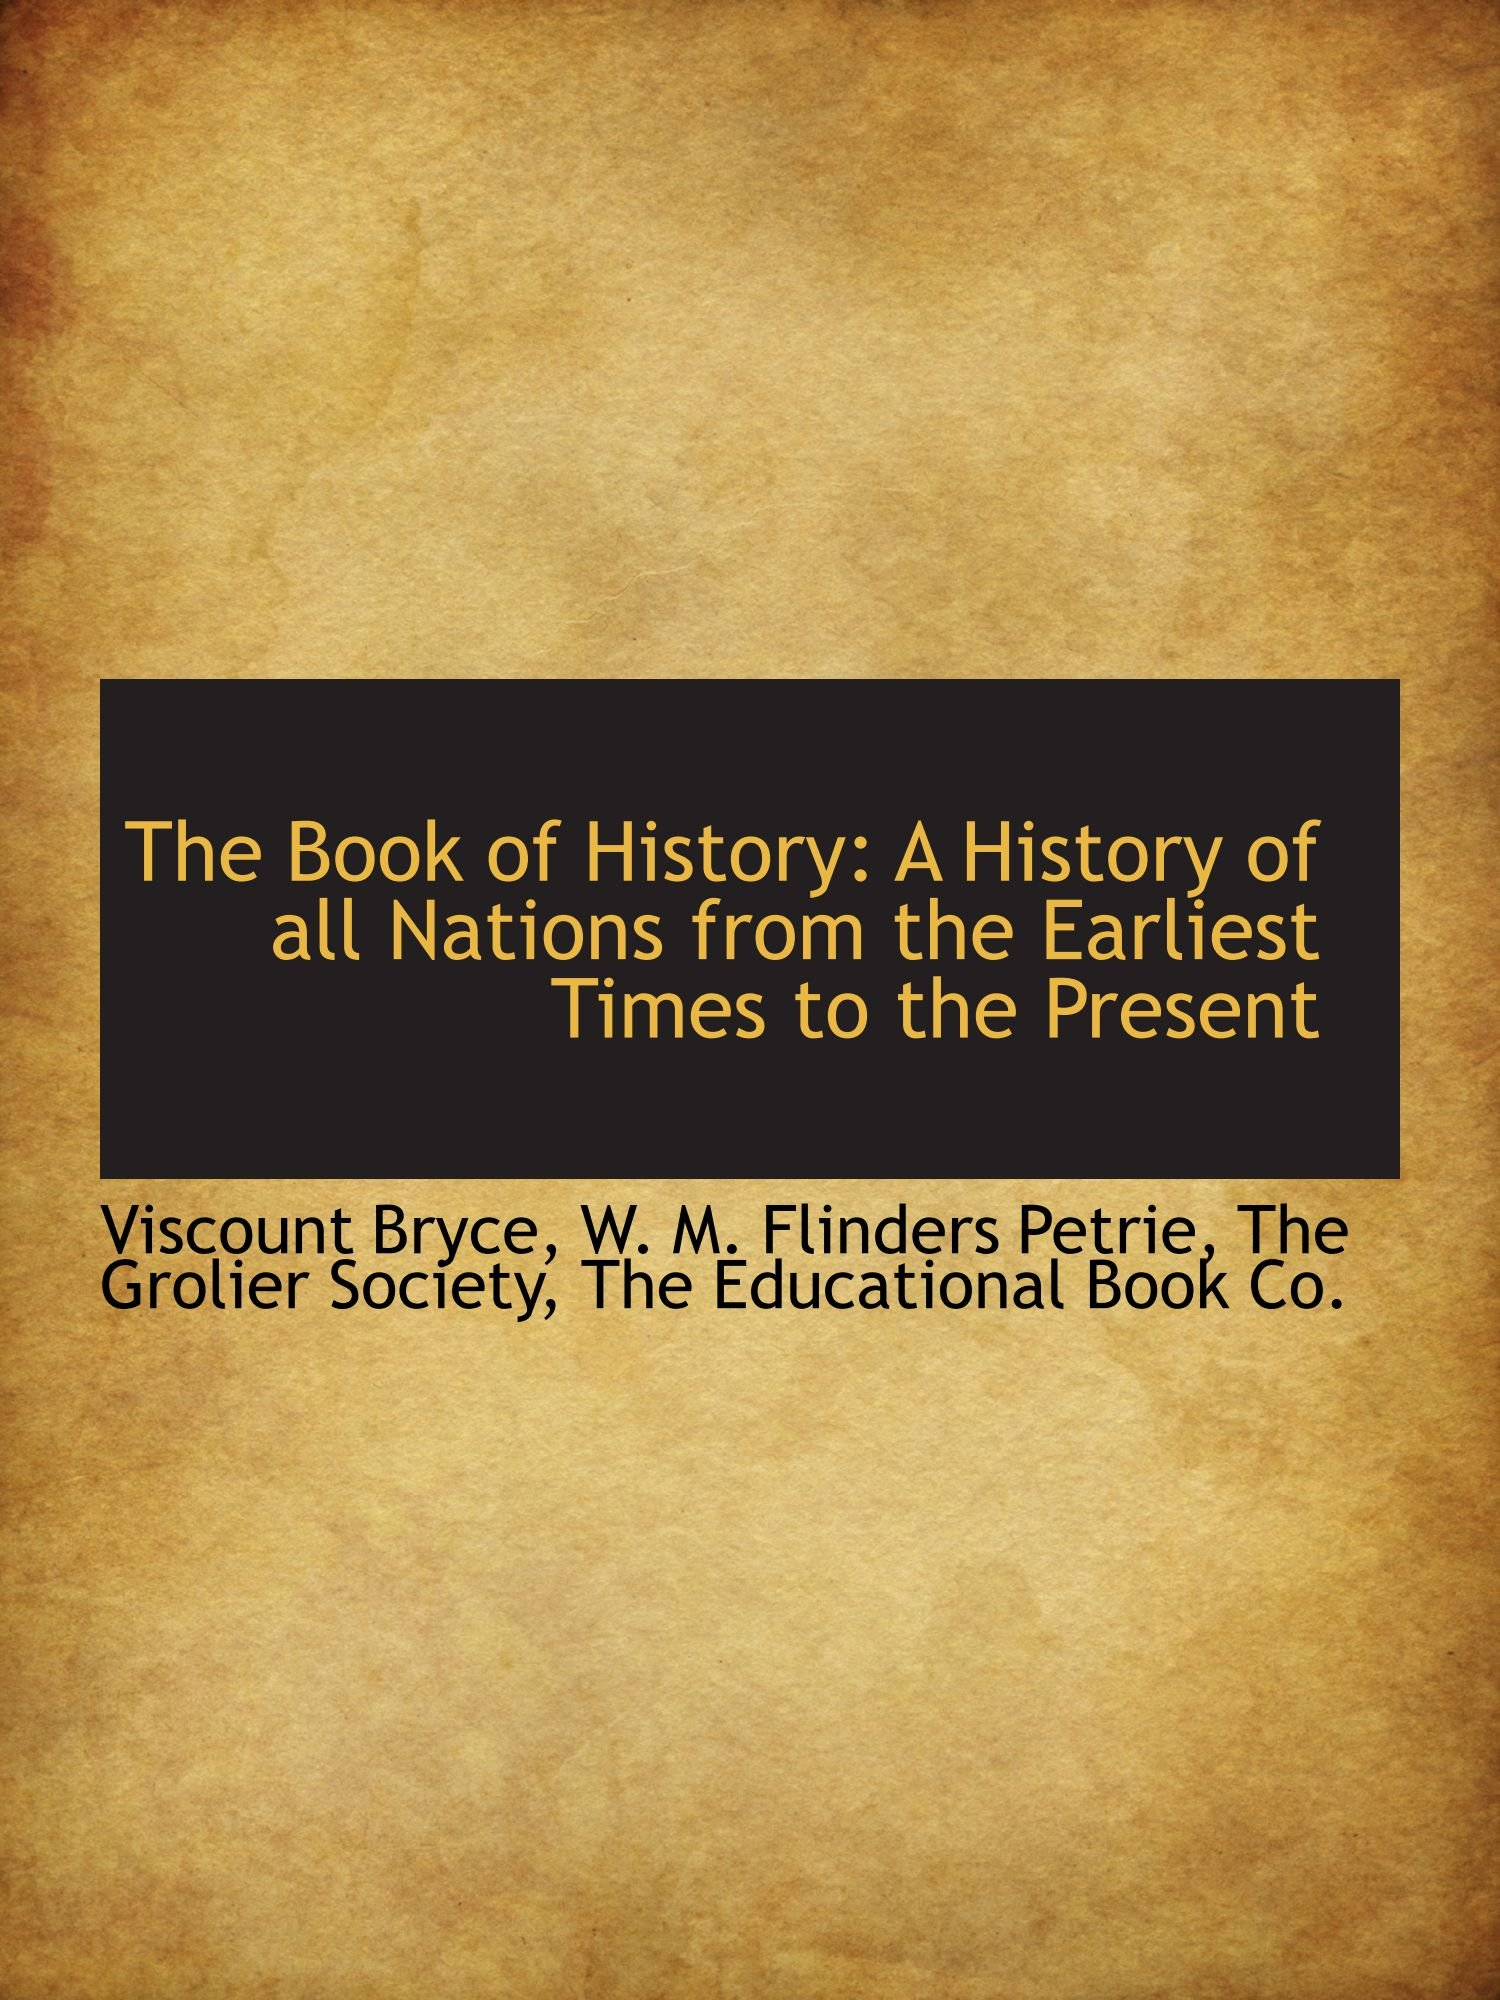 The Book of History: A History of all Nations from the Earliest Times to the Present ebook